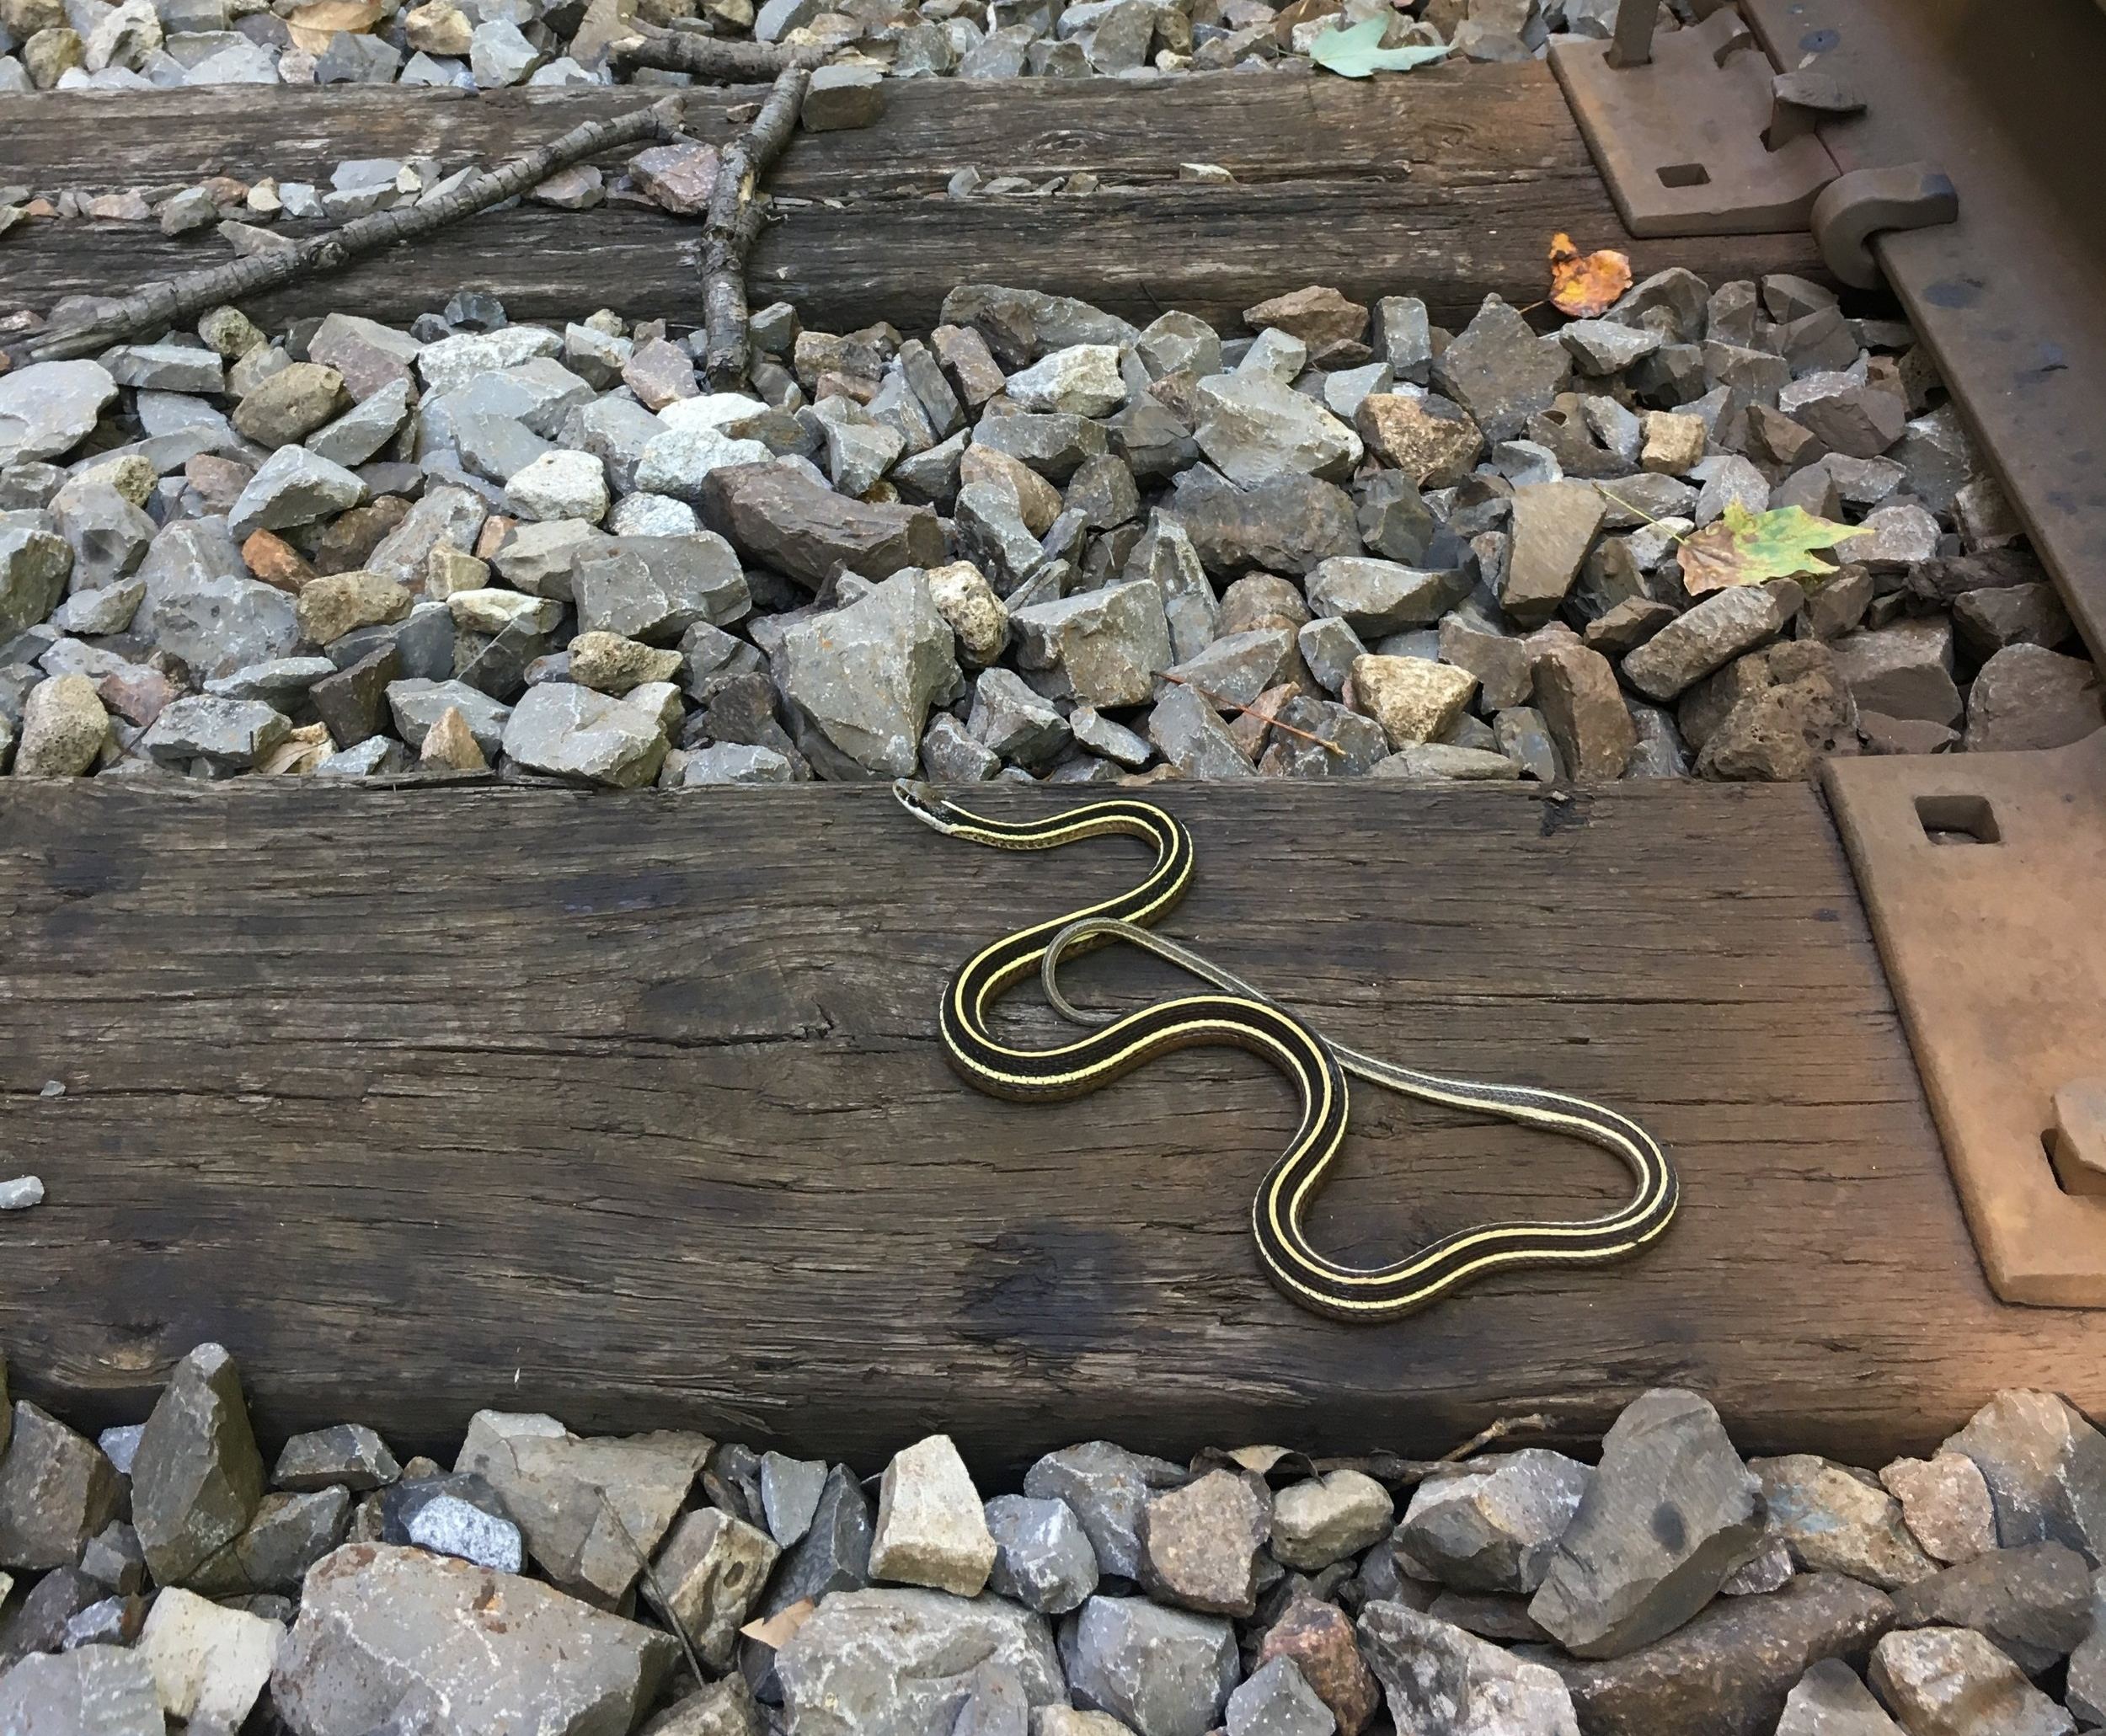 Eastern Ribbonsnake found along railroad tracks